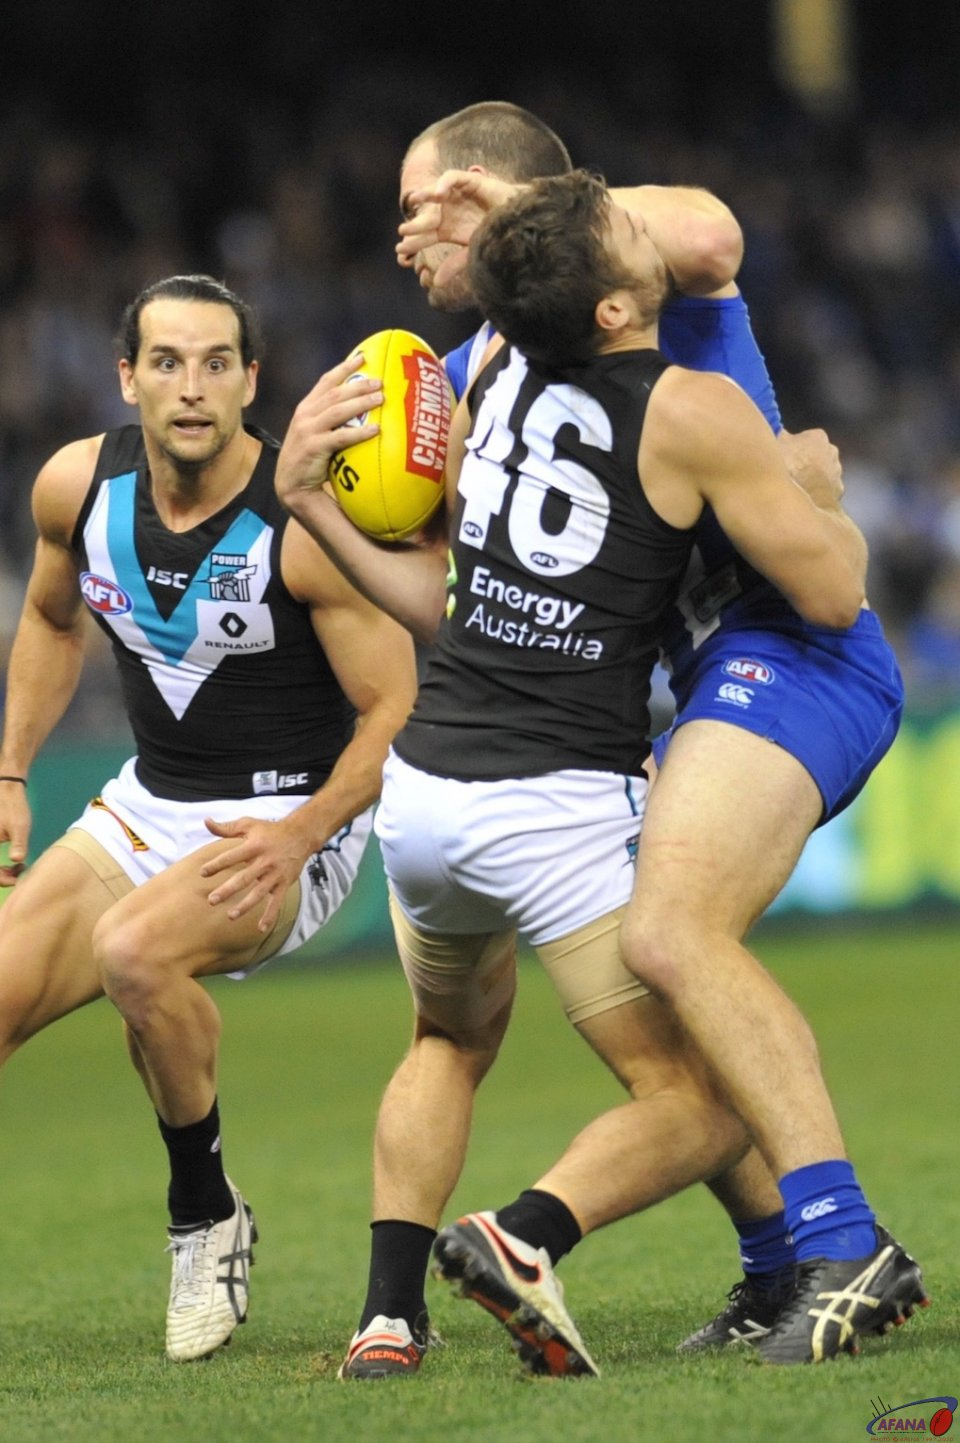 Ben Cunnington gives Sam Gray a solid fend off